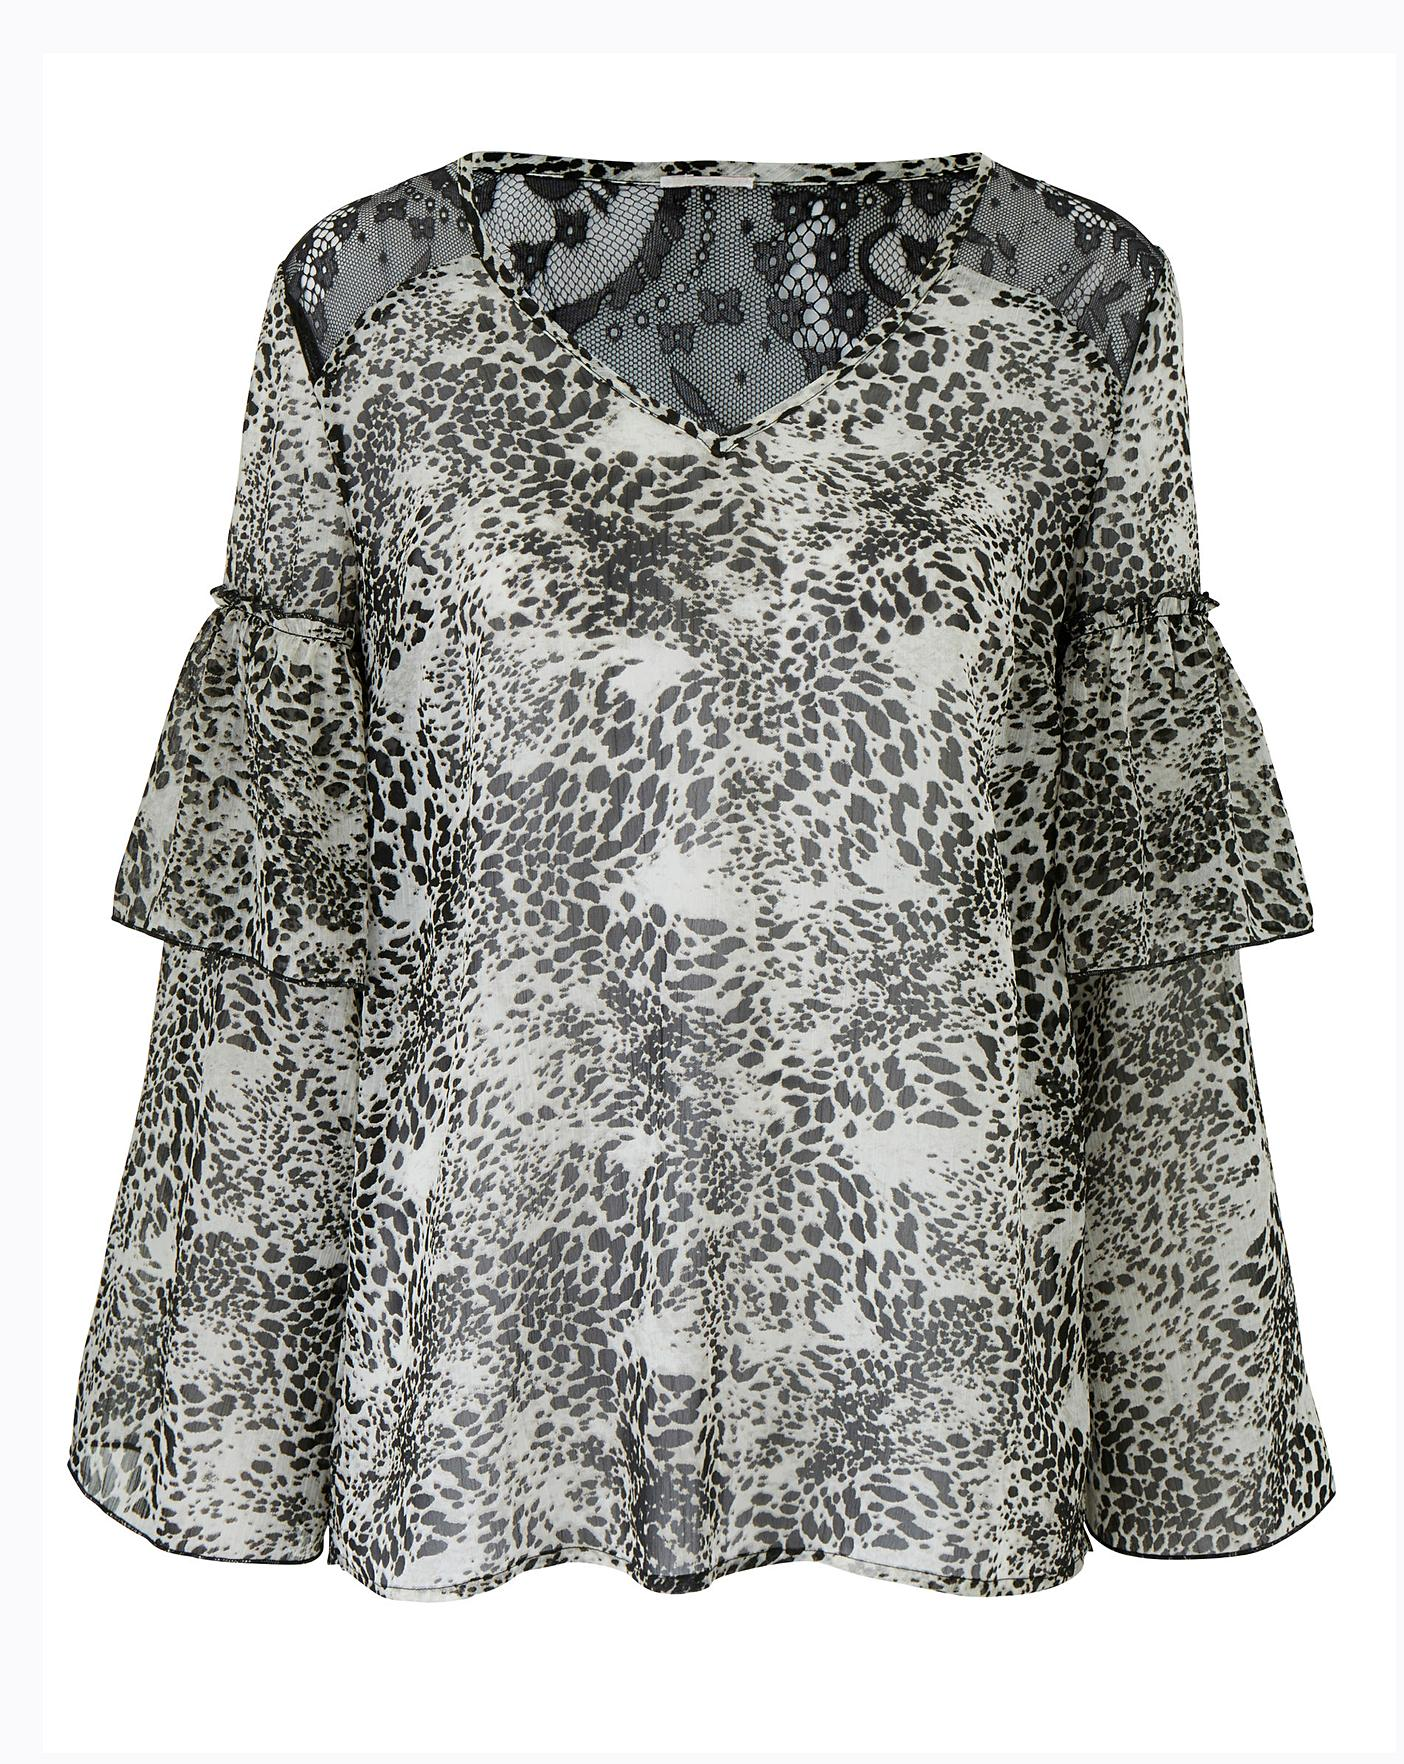 68343d8d84b Animal Print Layered Sleeve Top | Simply Be